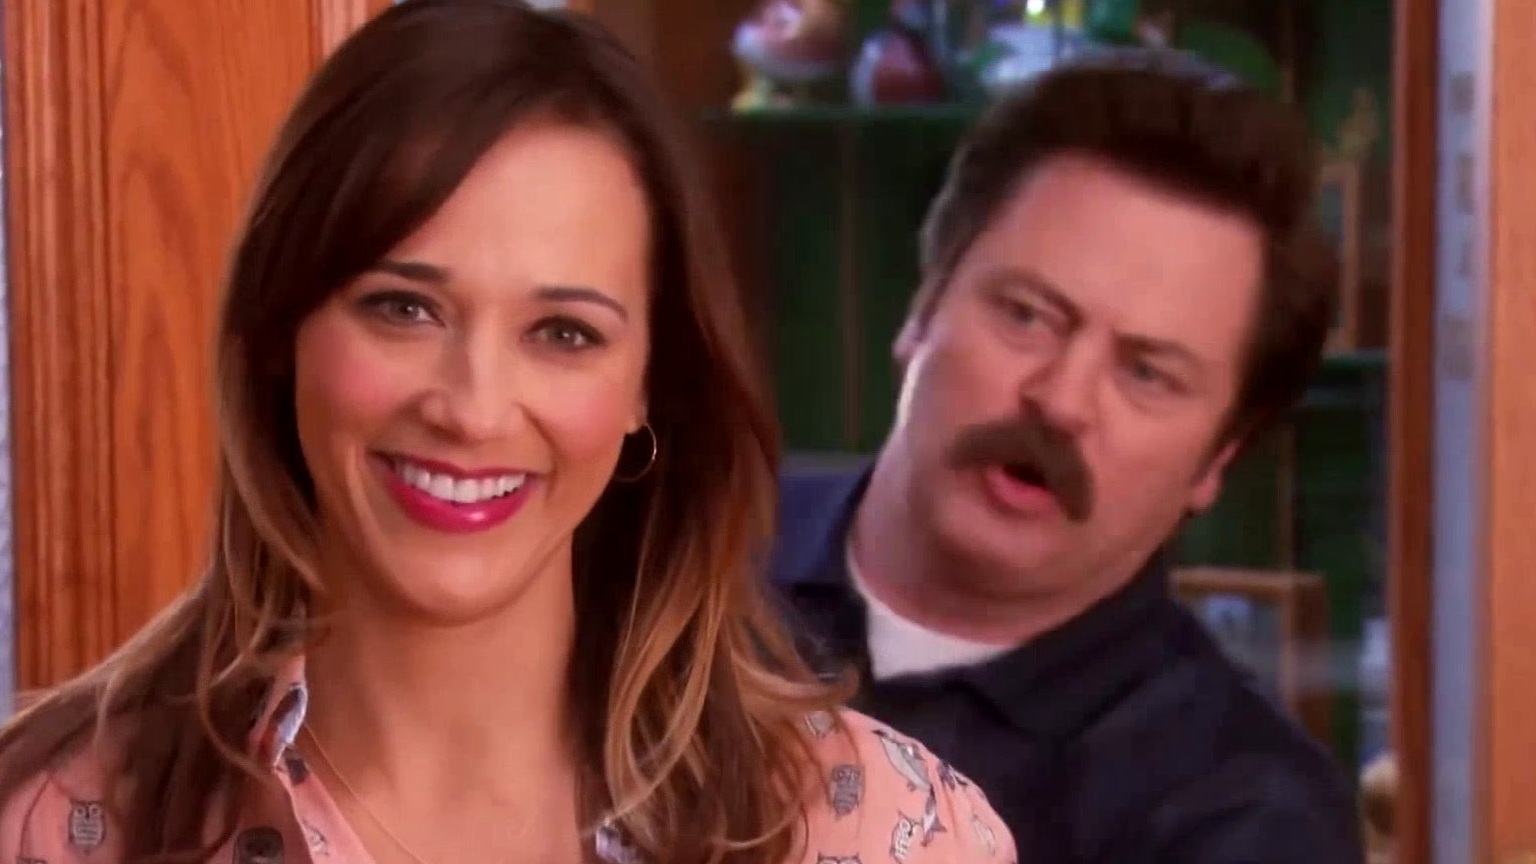 Parks And Recreation: Ron Swanson Tells Diane He Loves Her